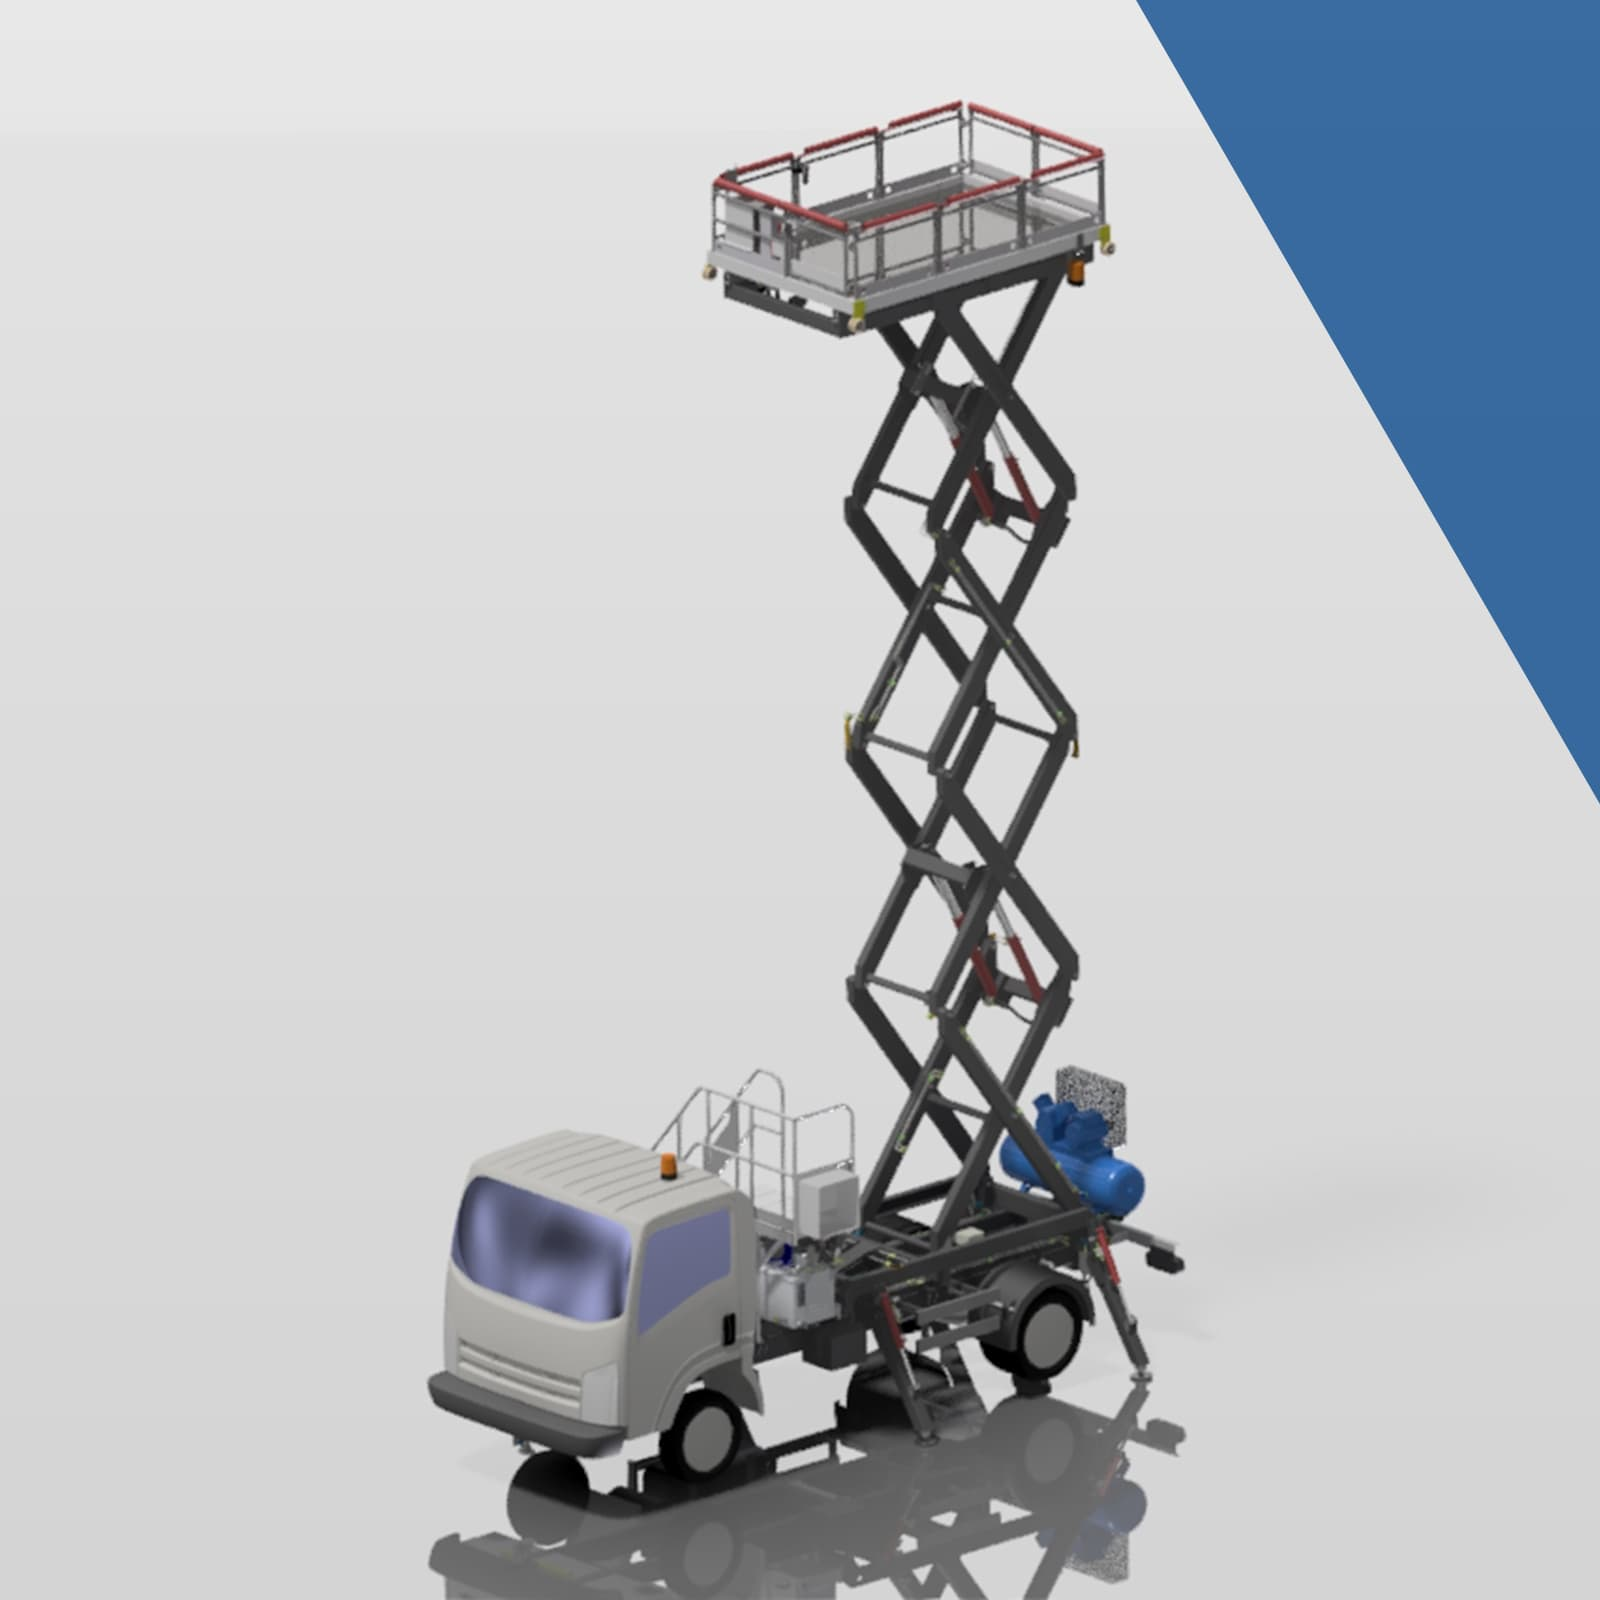 Small vehicle mounted scissor lifts